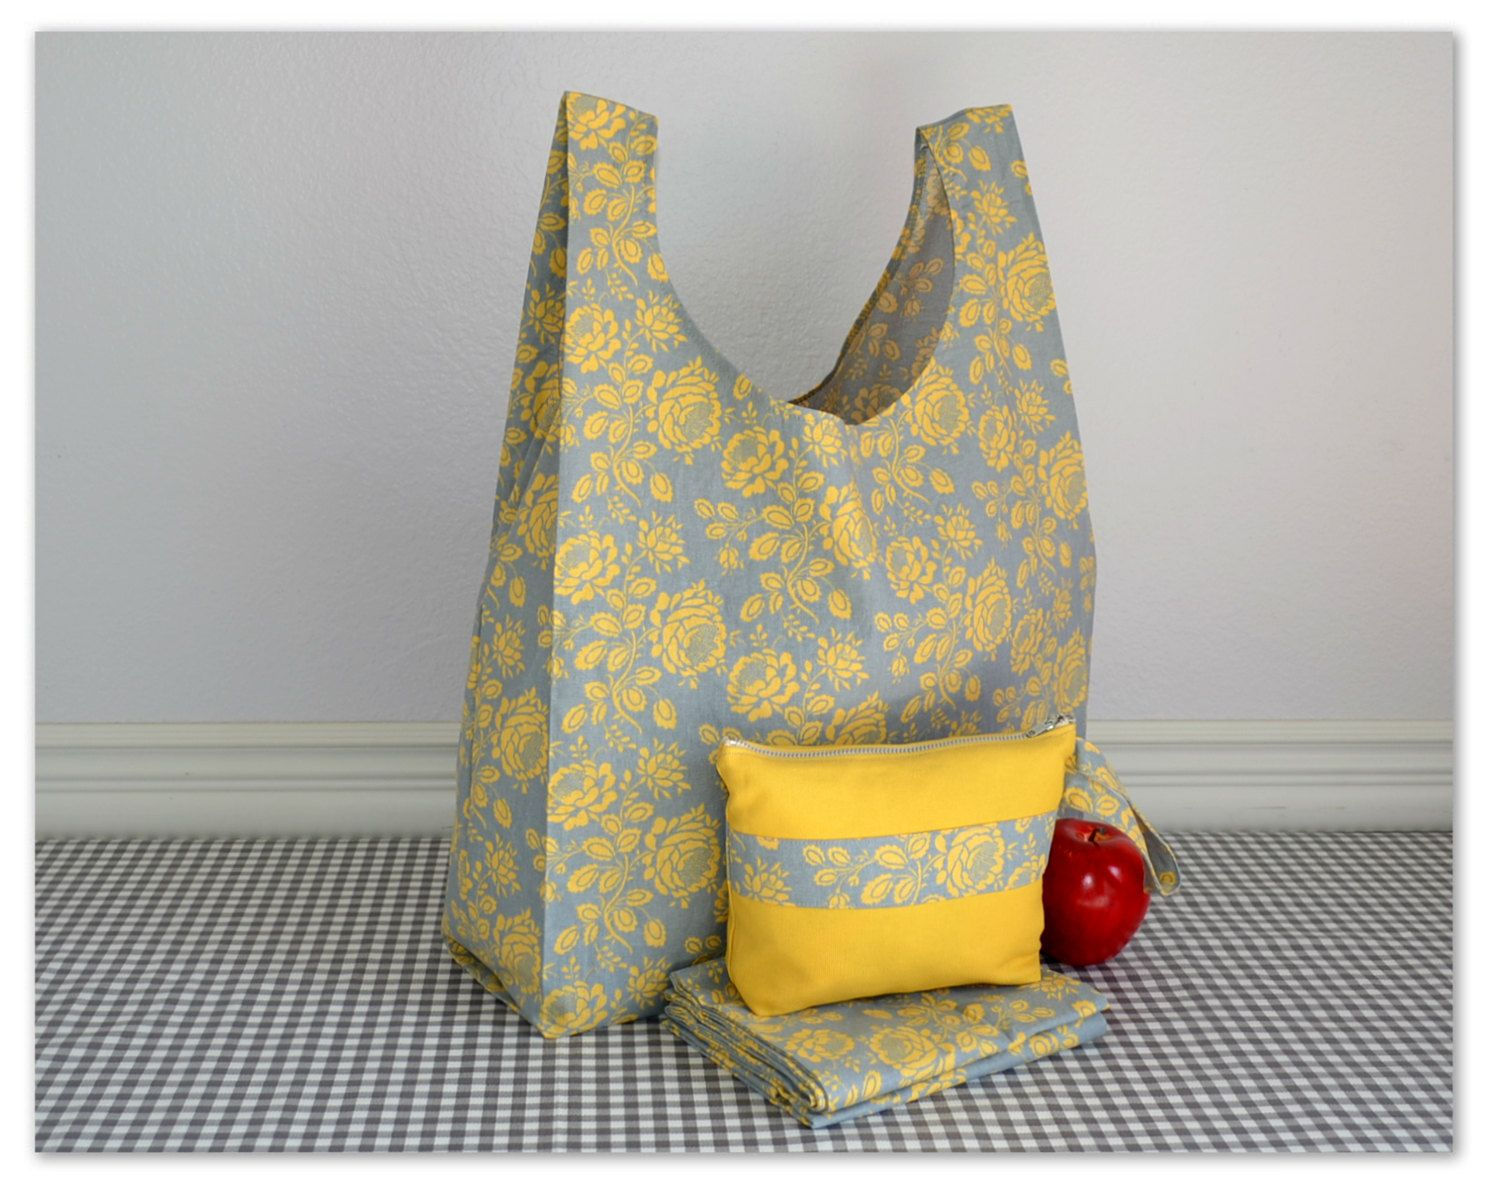 3 Bags Carrying Case Reusable Grocery Bag Tote Farmers Market Ping Washable Yellow And Gray By Molliemoxie On Etsy